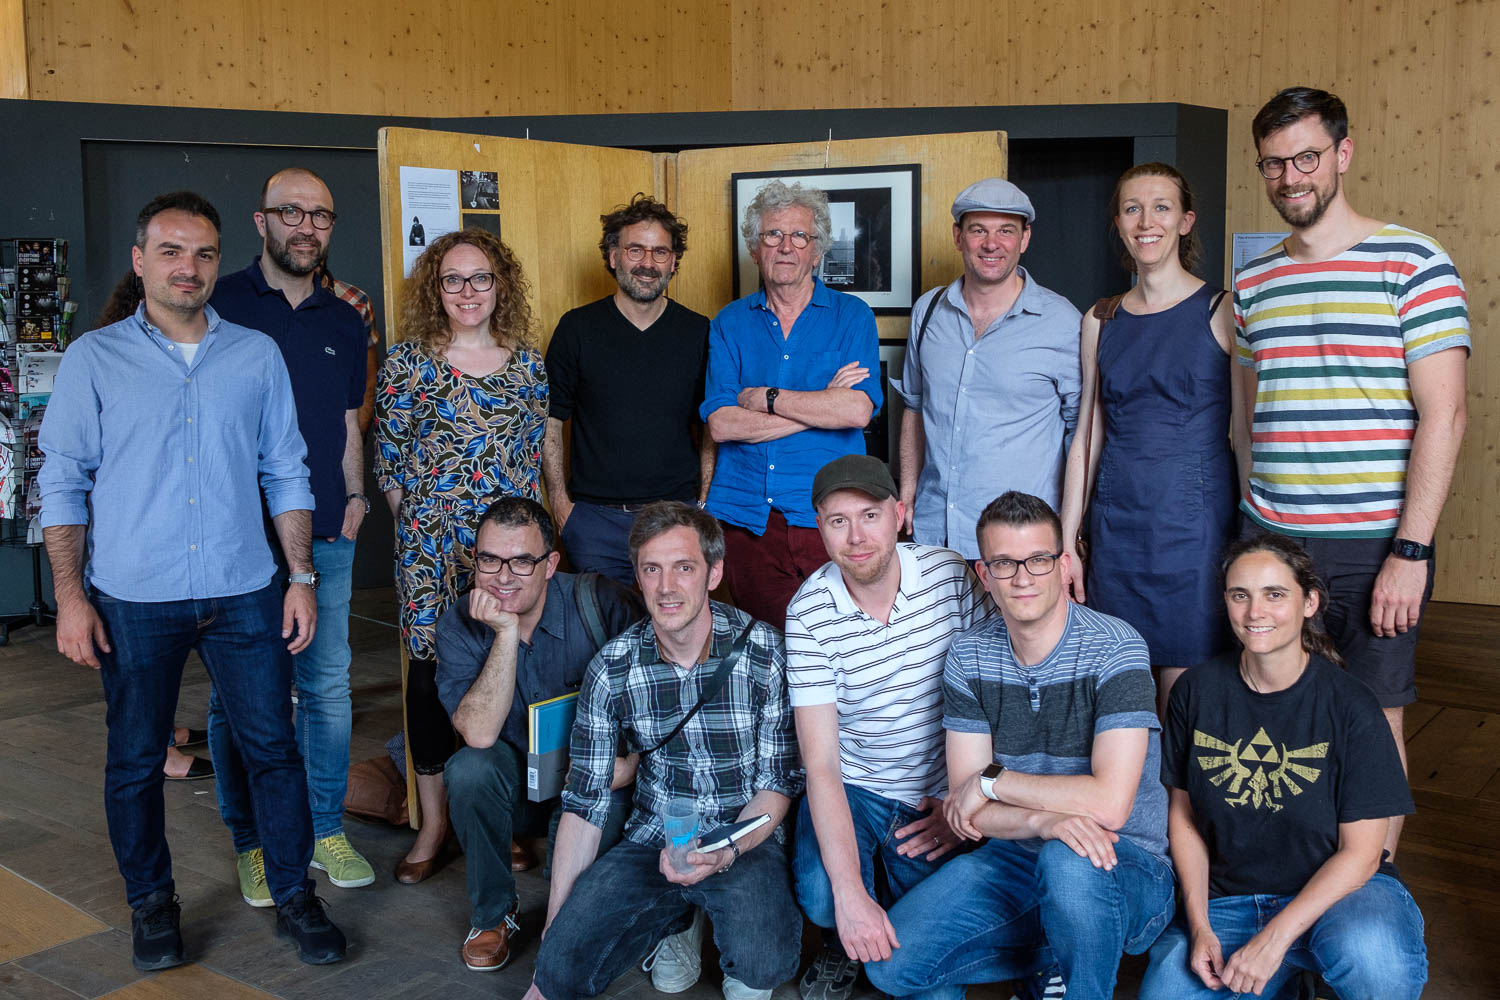 Luxembourg Street Photography Festival at Rotondes - LSPF 2018 From left to right, top row: Catalin Burlacu, Jeff Mouton, Veronique Kolber, Txema Salvans,Harry Gruyaert, Christian Reister, Giulia Thinnes, Tom Weis From left to right, bottom row:Paulo Lobo, Dirk Mevis, Christophe Van Biesen, Paul Bintner, Véronique Fixmer